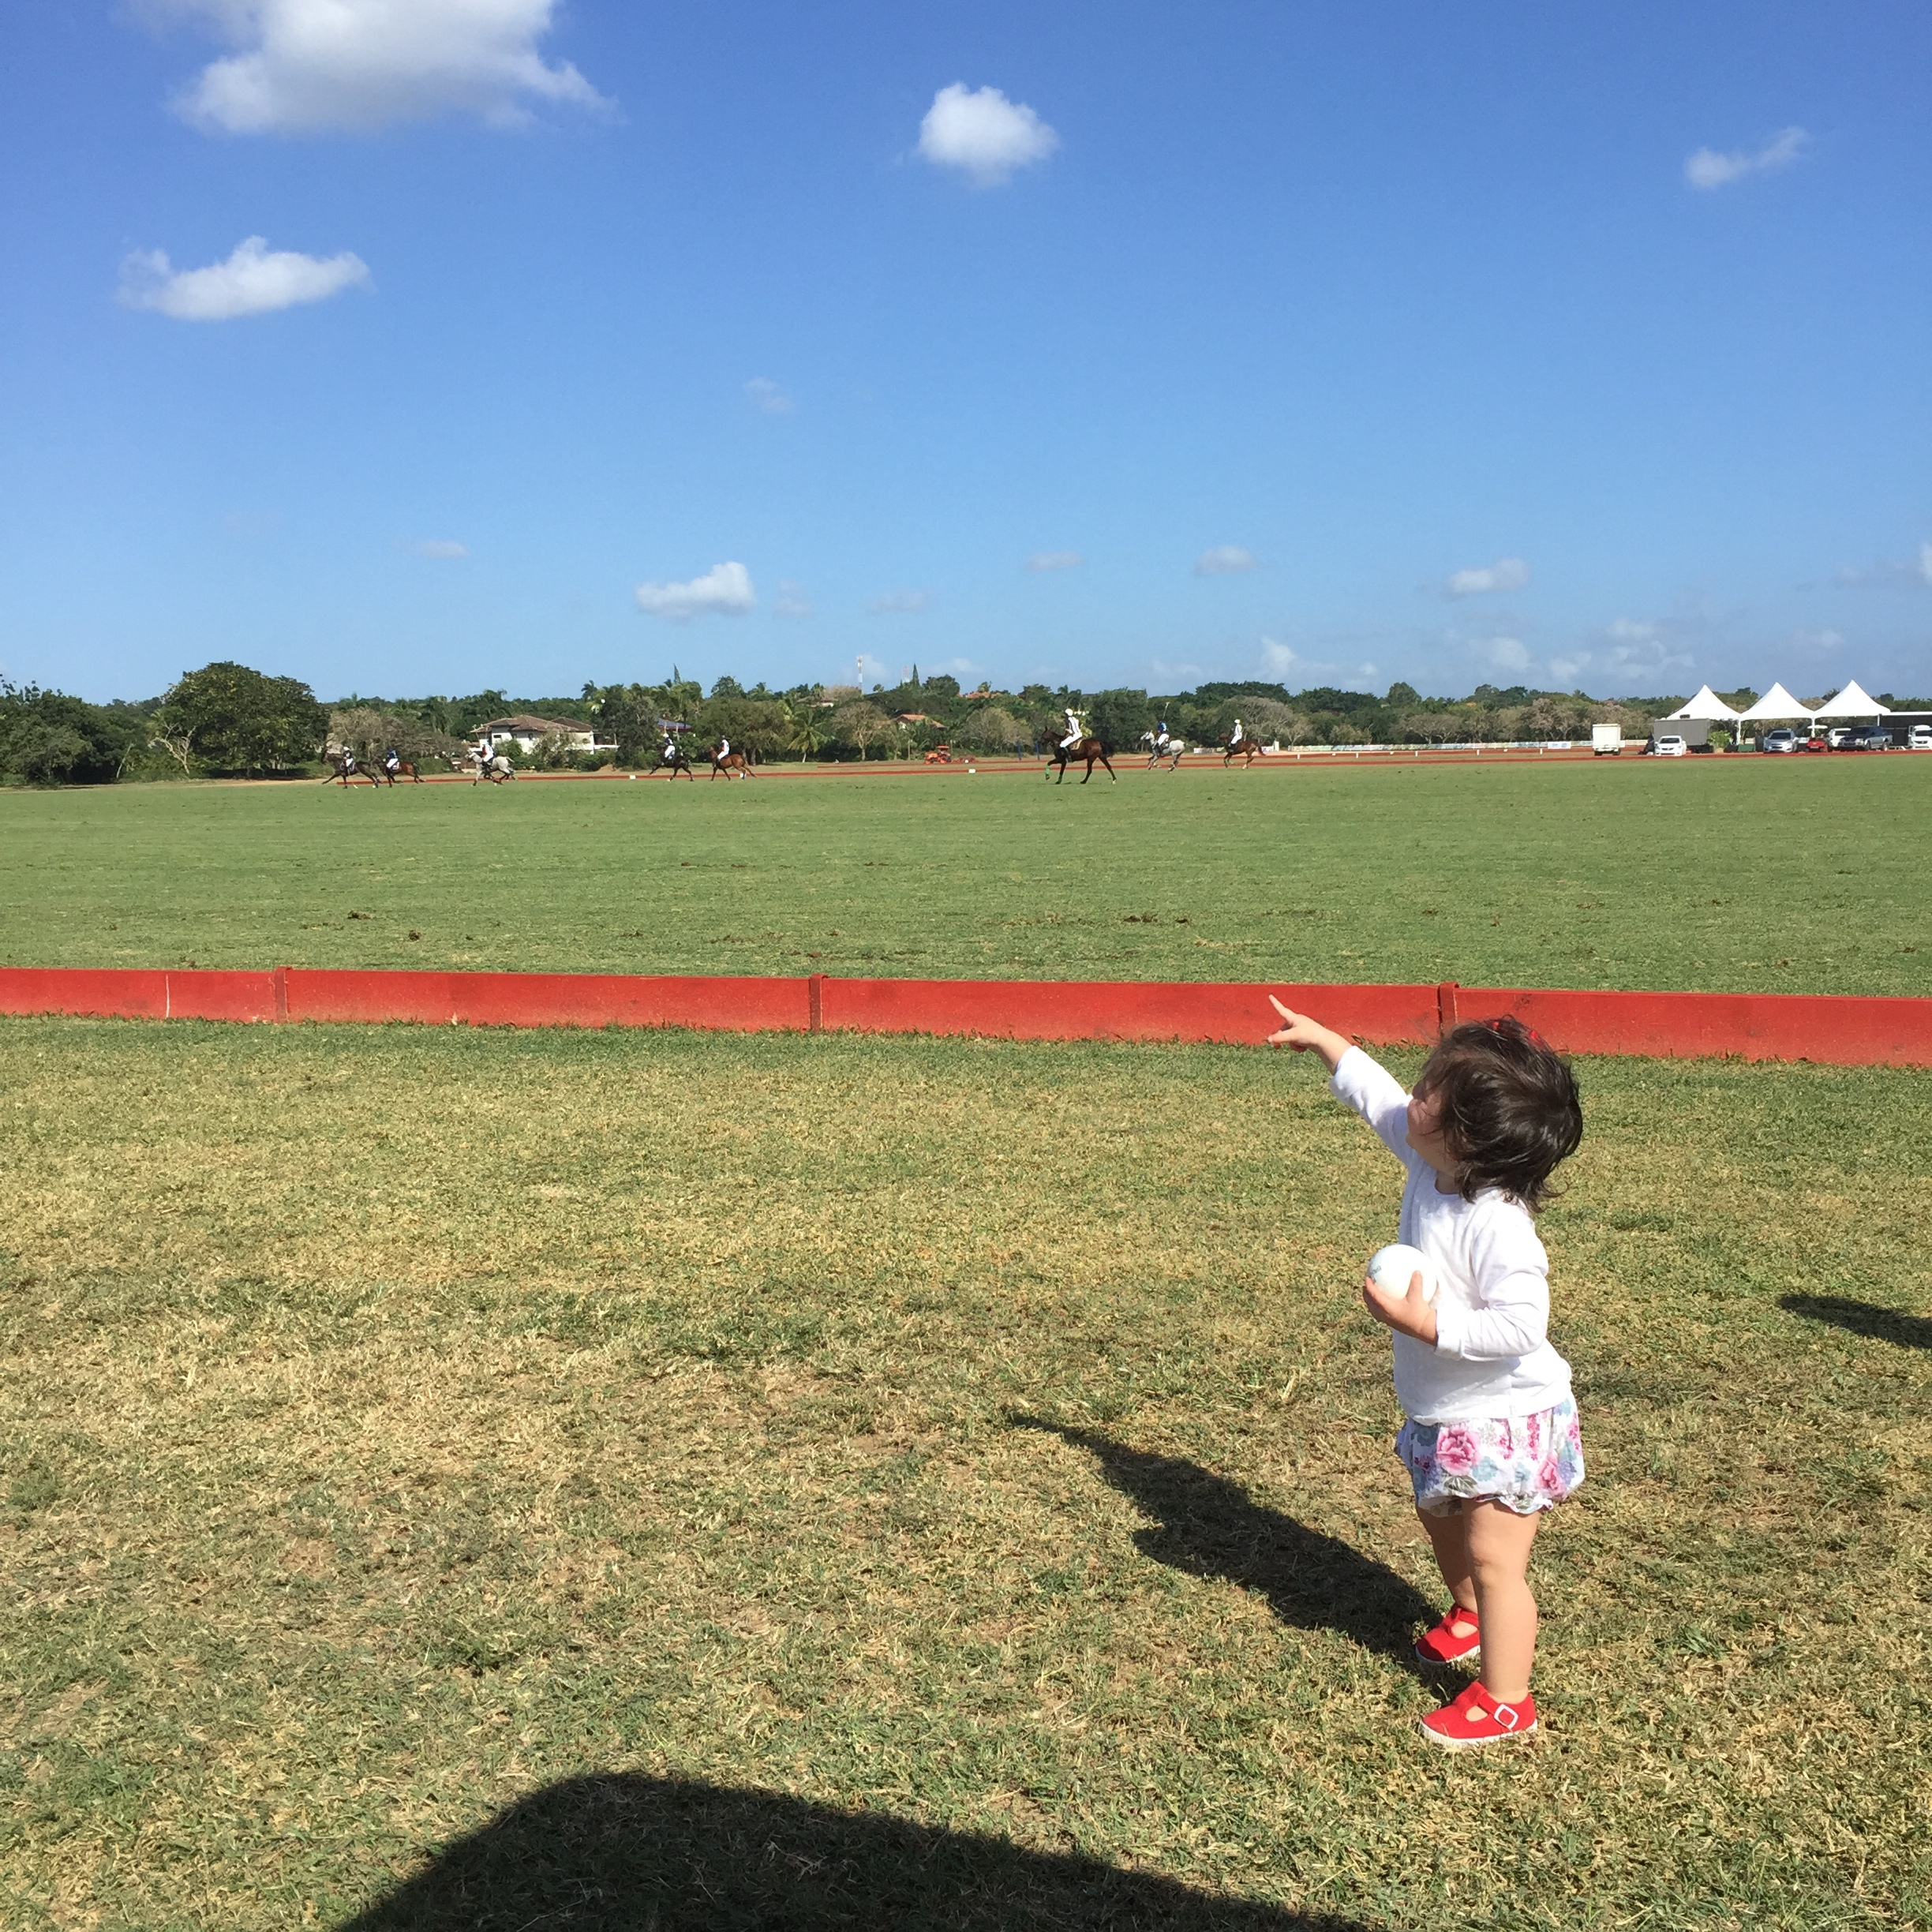 """Polo has come a long way at Casa de Campo. It was such a treat and very exciting to get to check out high goal polo while visiting. Such a beautiful setting and easily accessible to the public. Make sure to check it out if you are in CDC this season. She is fascinated by all things in the sky, in this case the """"Polo Drone""""."""